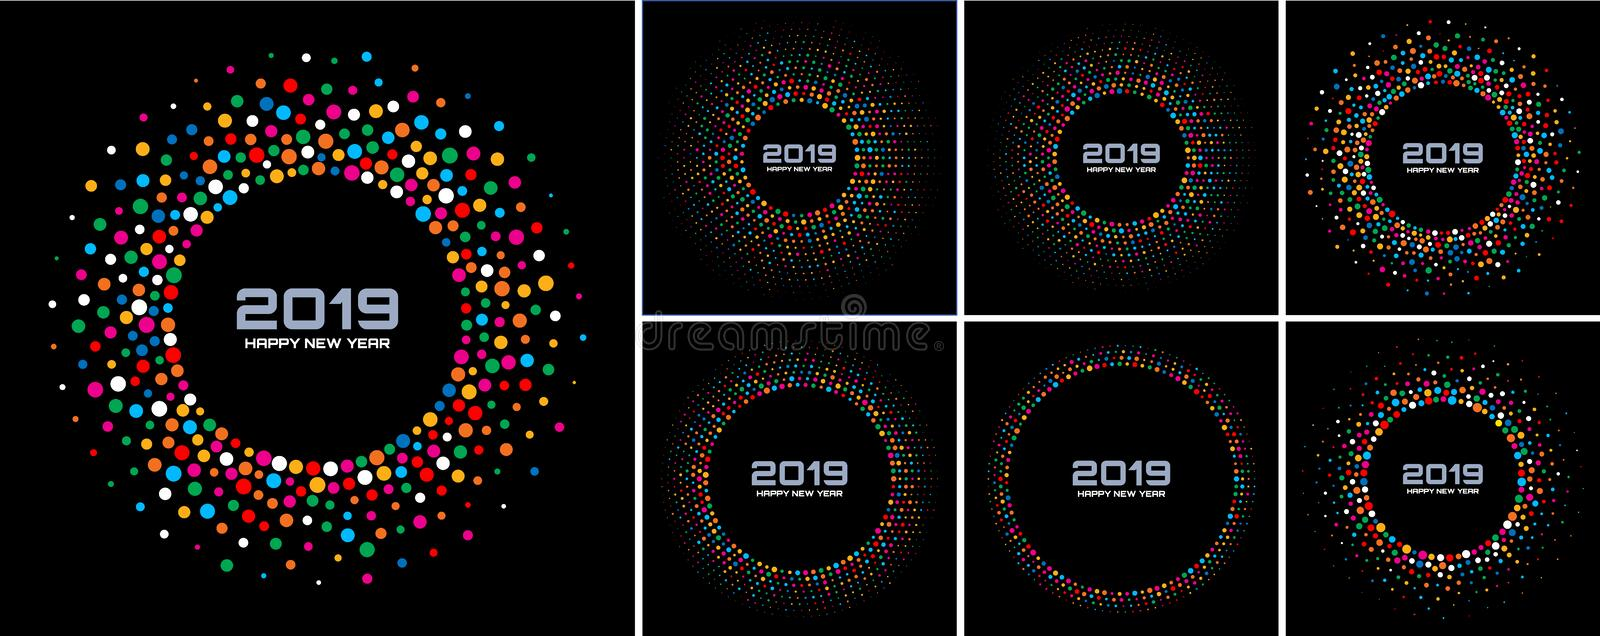 New Year 2019 Card Backgrounds set. Bright Colorful Disco Lights Confetti Circle Frame isolated on black background. vector illustration